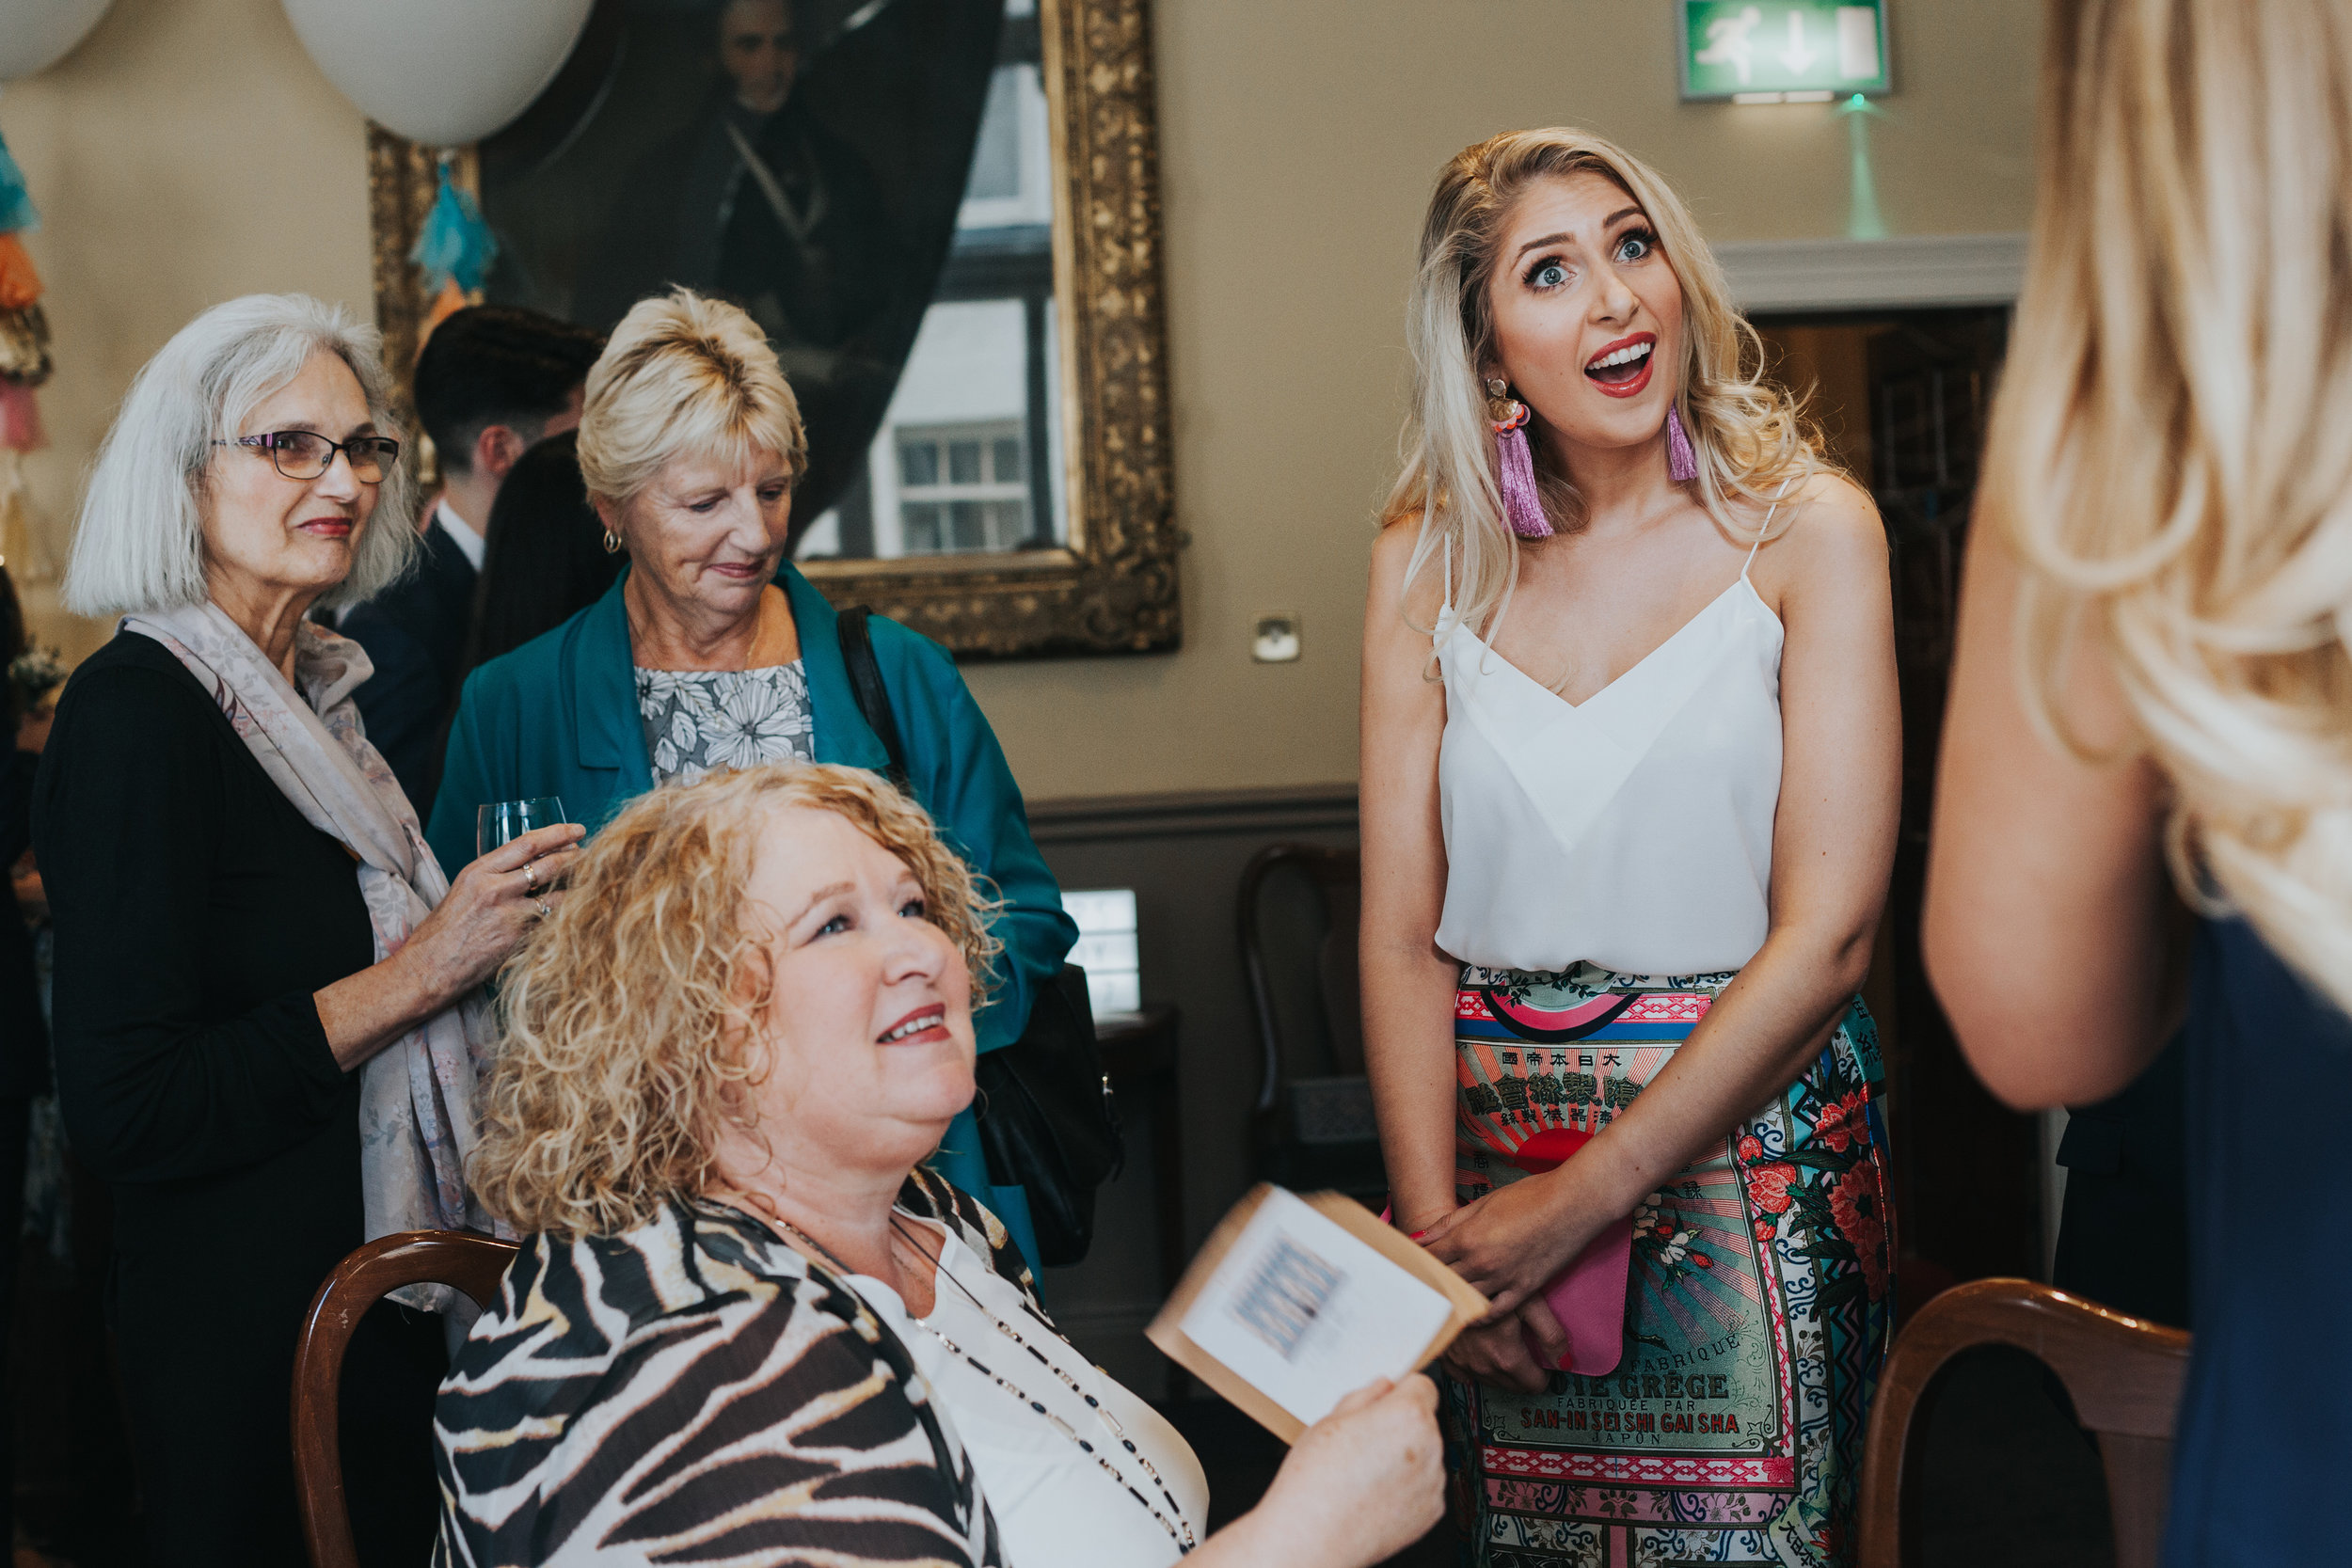 Wedding guests are catching up in the main hall room at The Racquet Club, Liverpool.